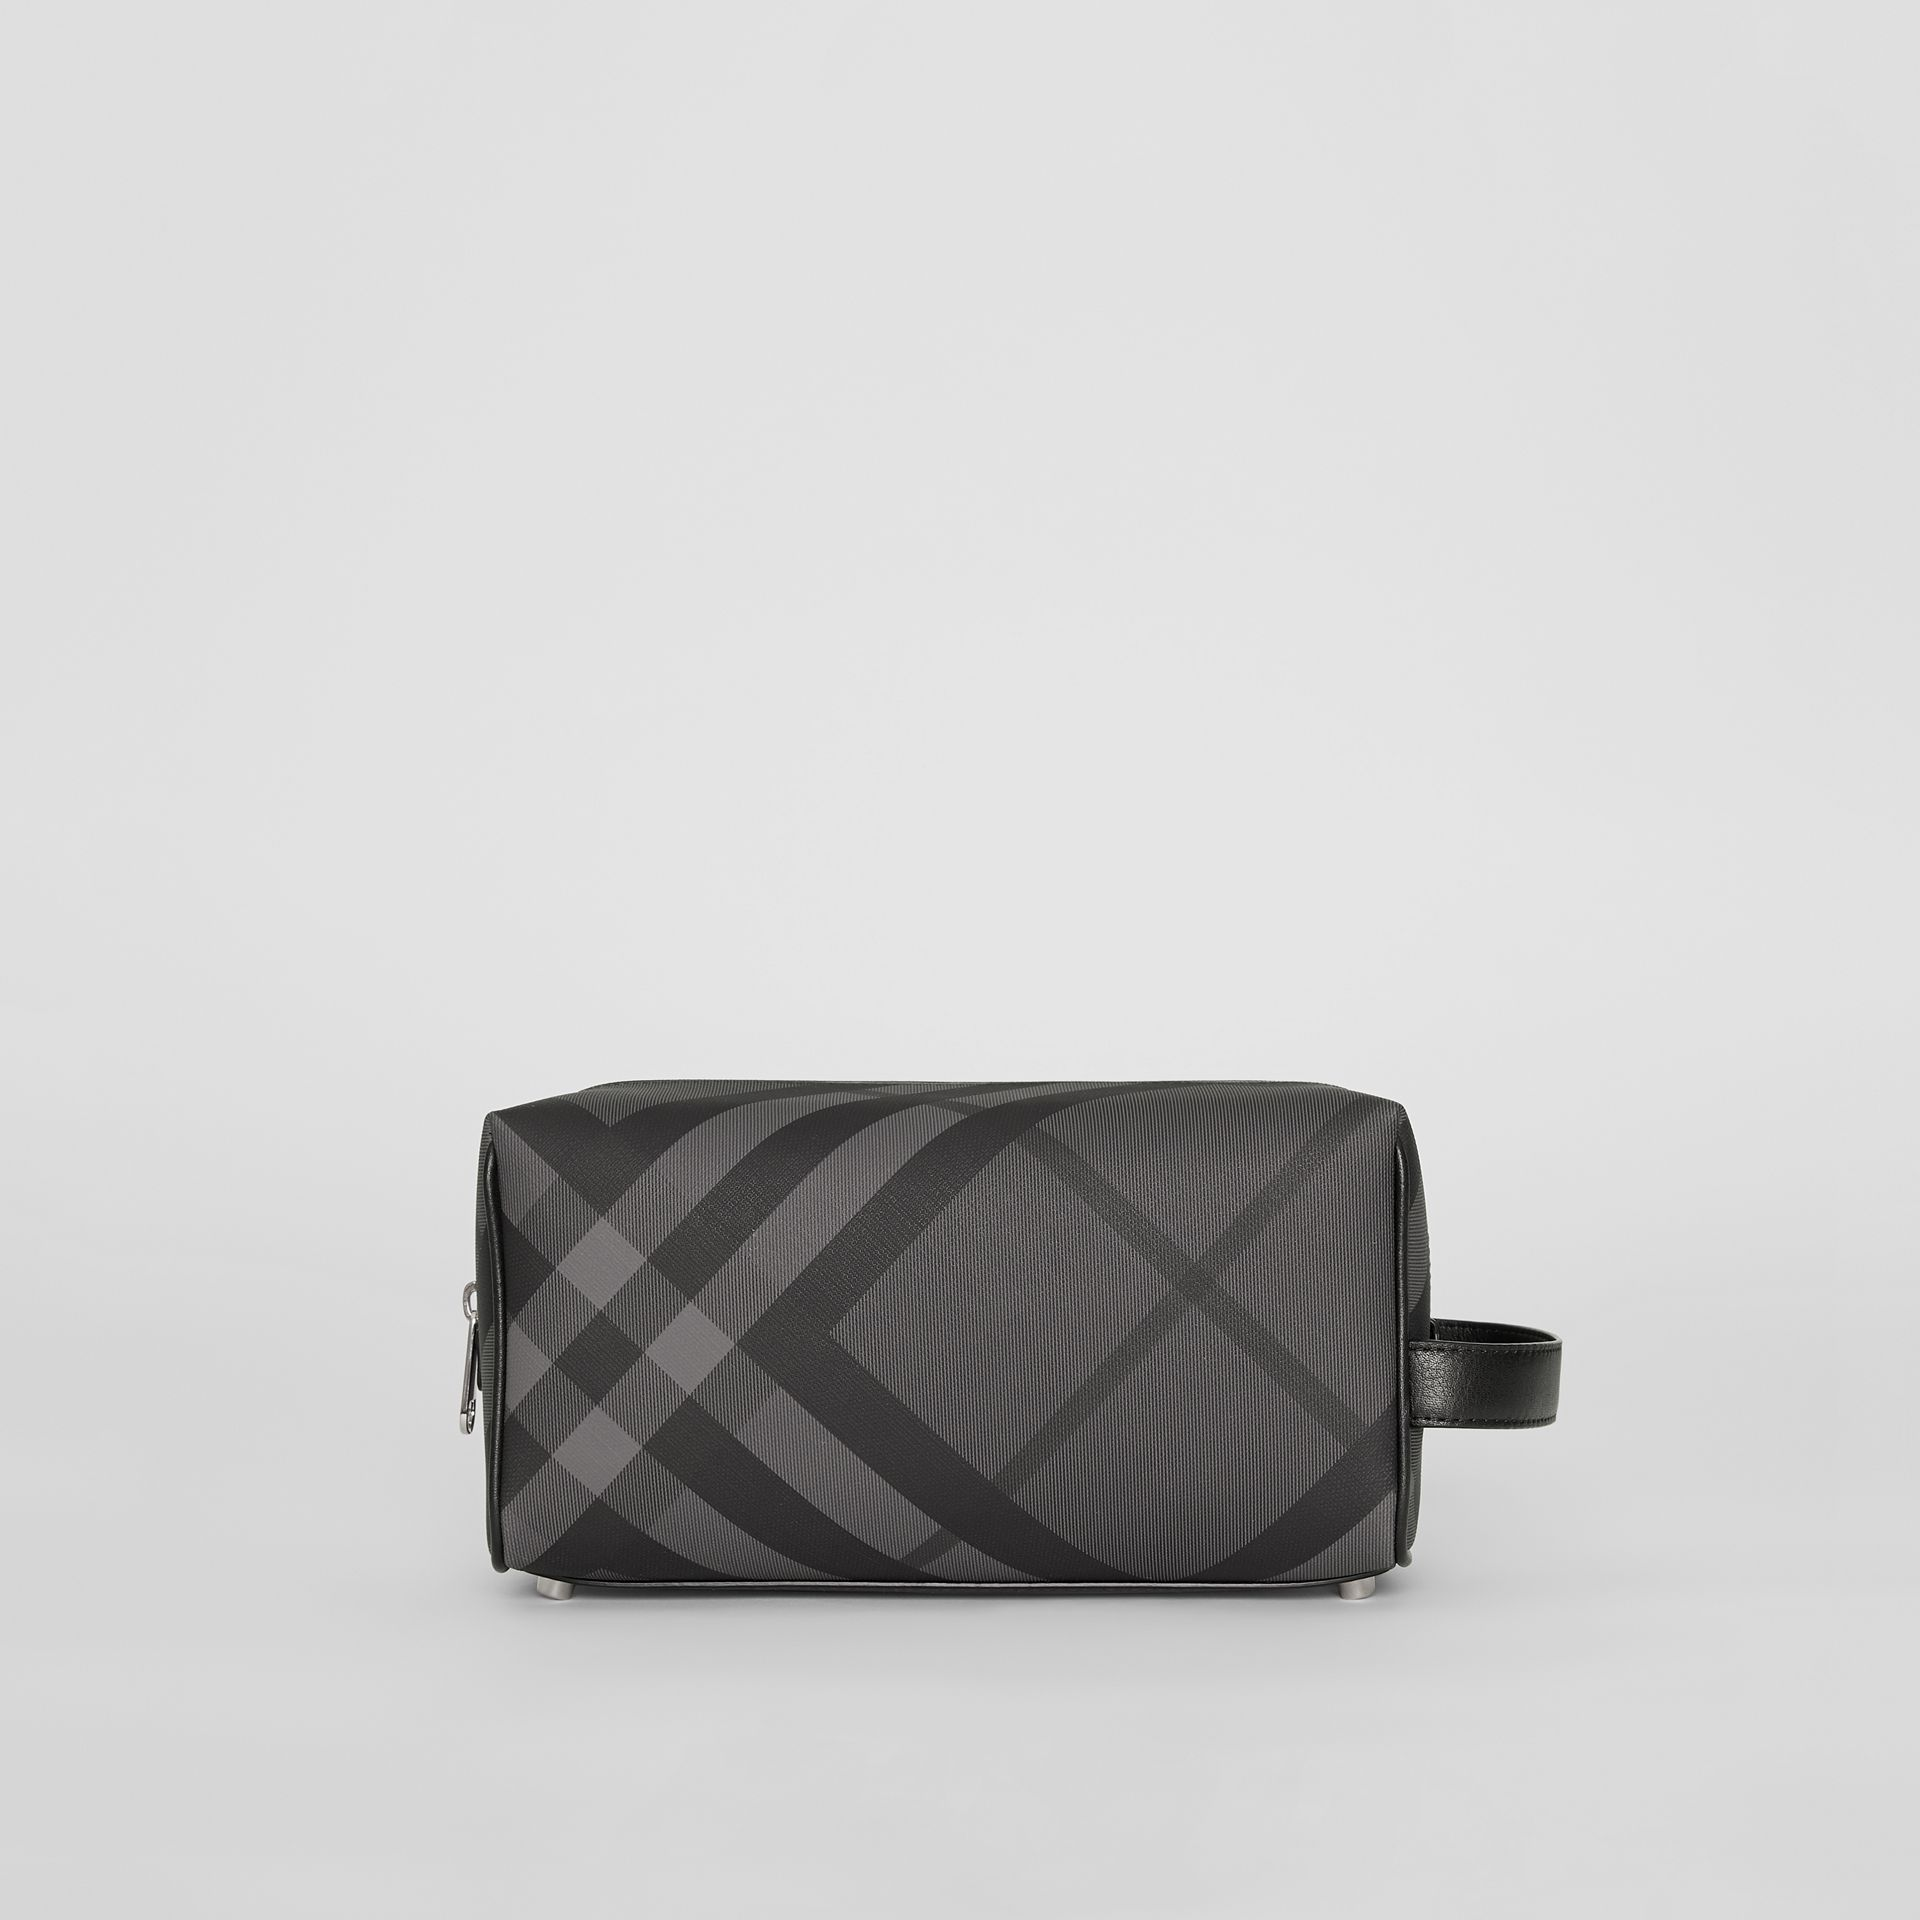 Pochette en cuir à motif London check (Anthracite/noir) - Homme | Burberry Canada - photo de la galerie 4